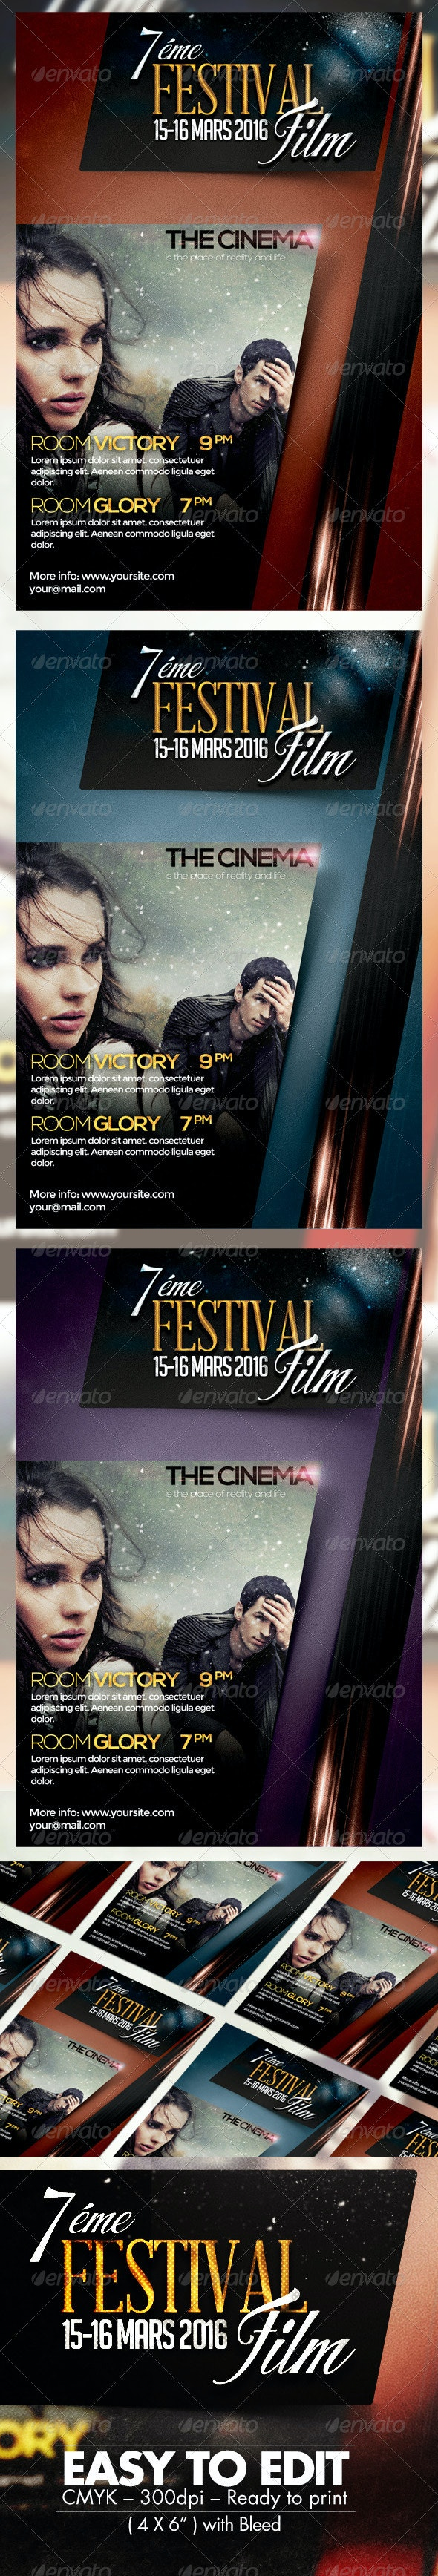 Festival Film Flyer Template - Events Flyers